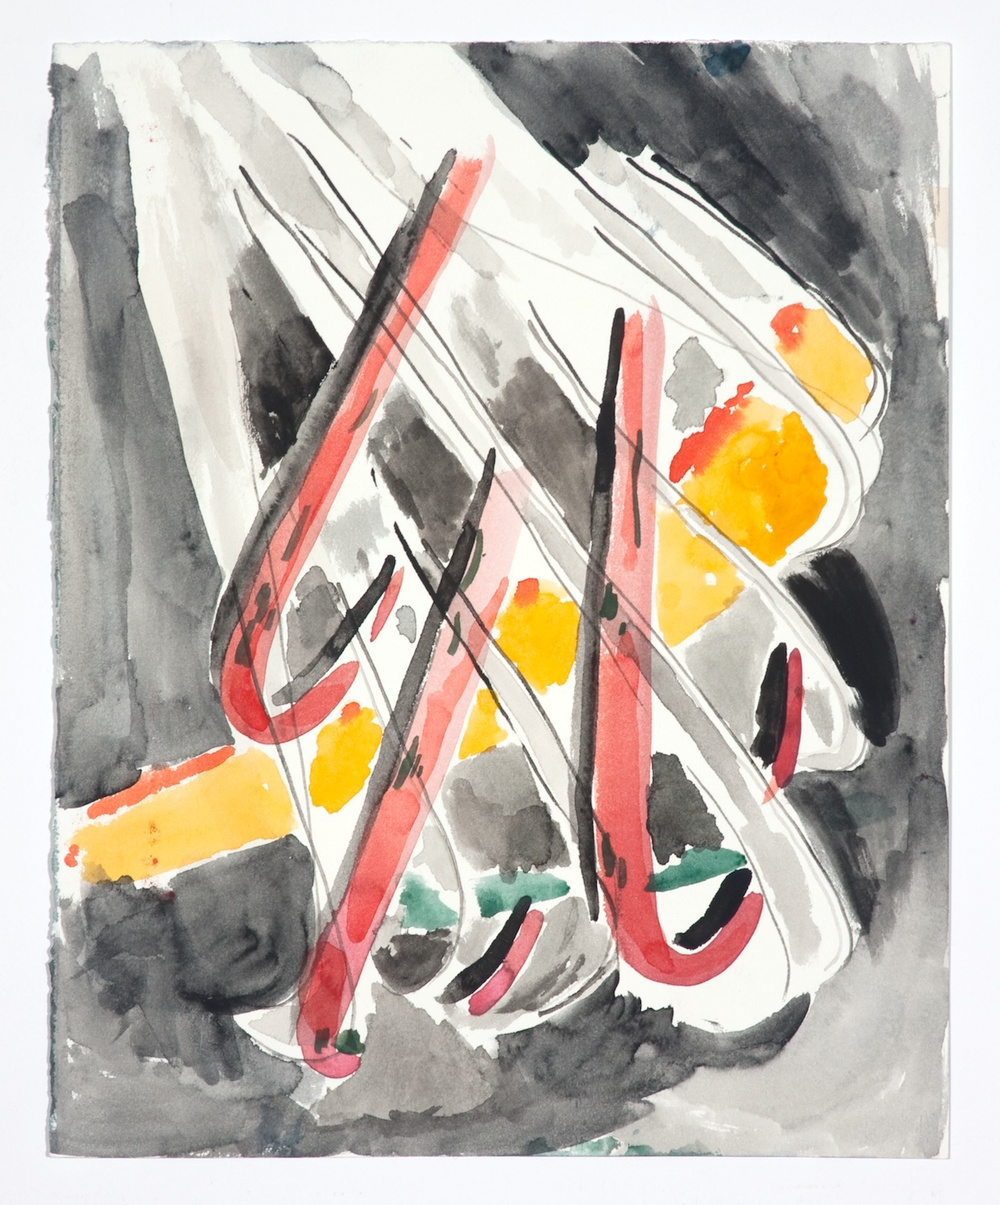 "Jon Pestoni Untitled 2009 Gouache on paper 14"" x 11 1/4"" JP053"